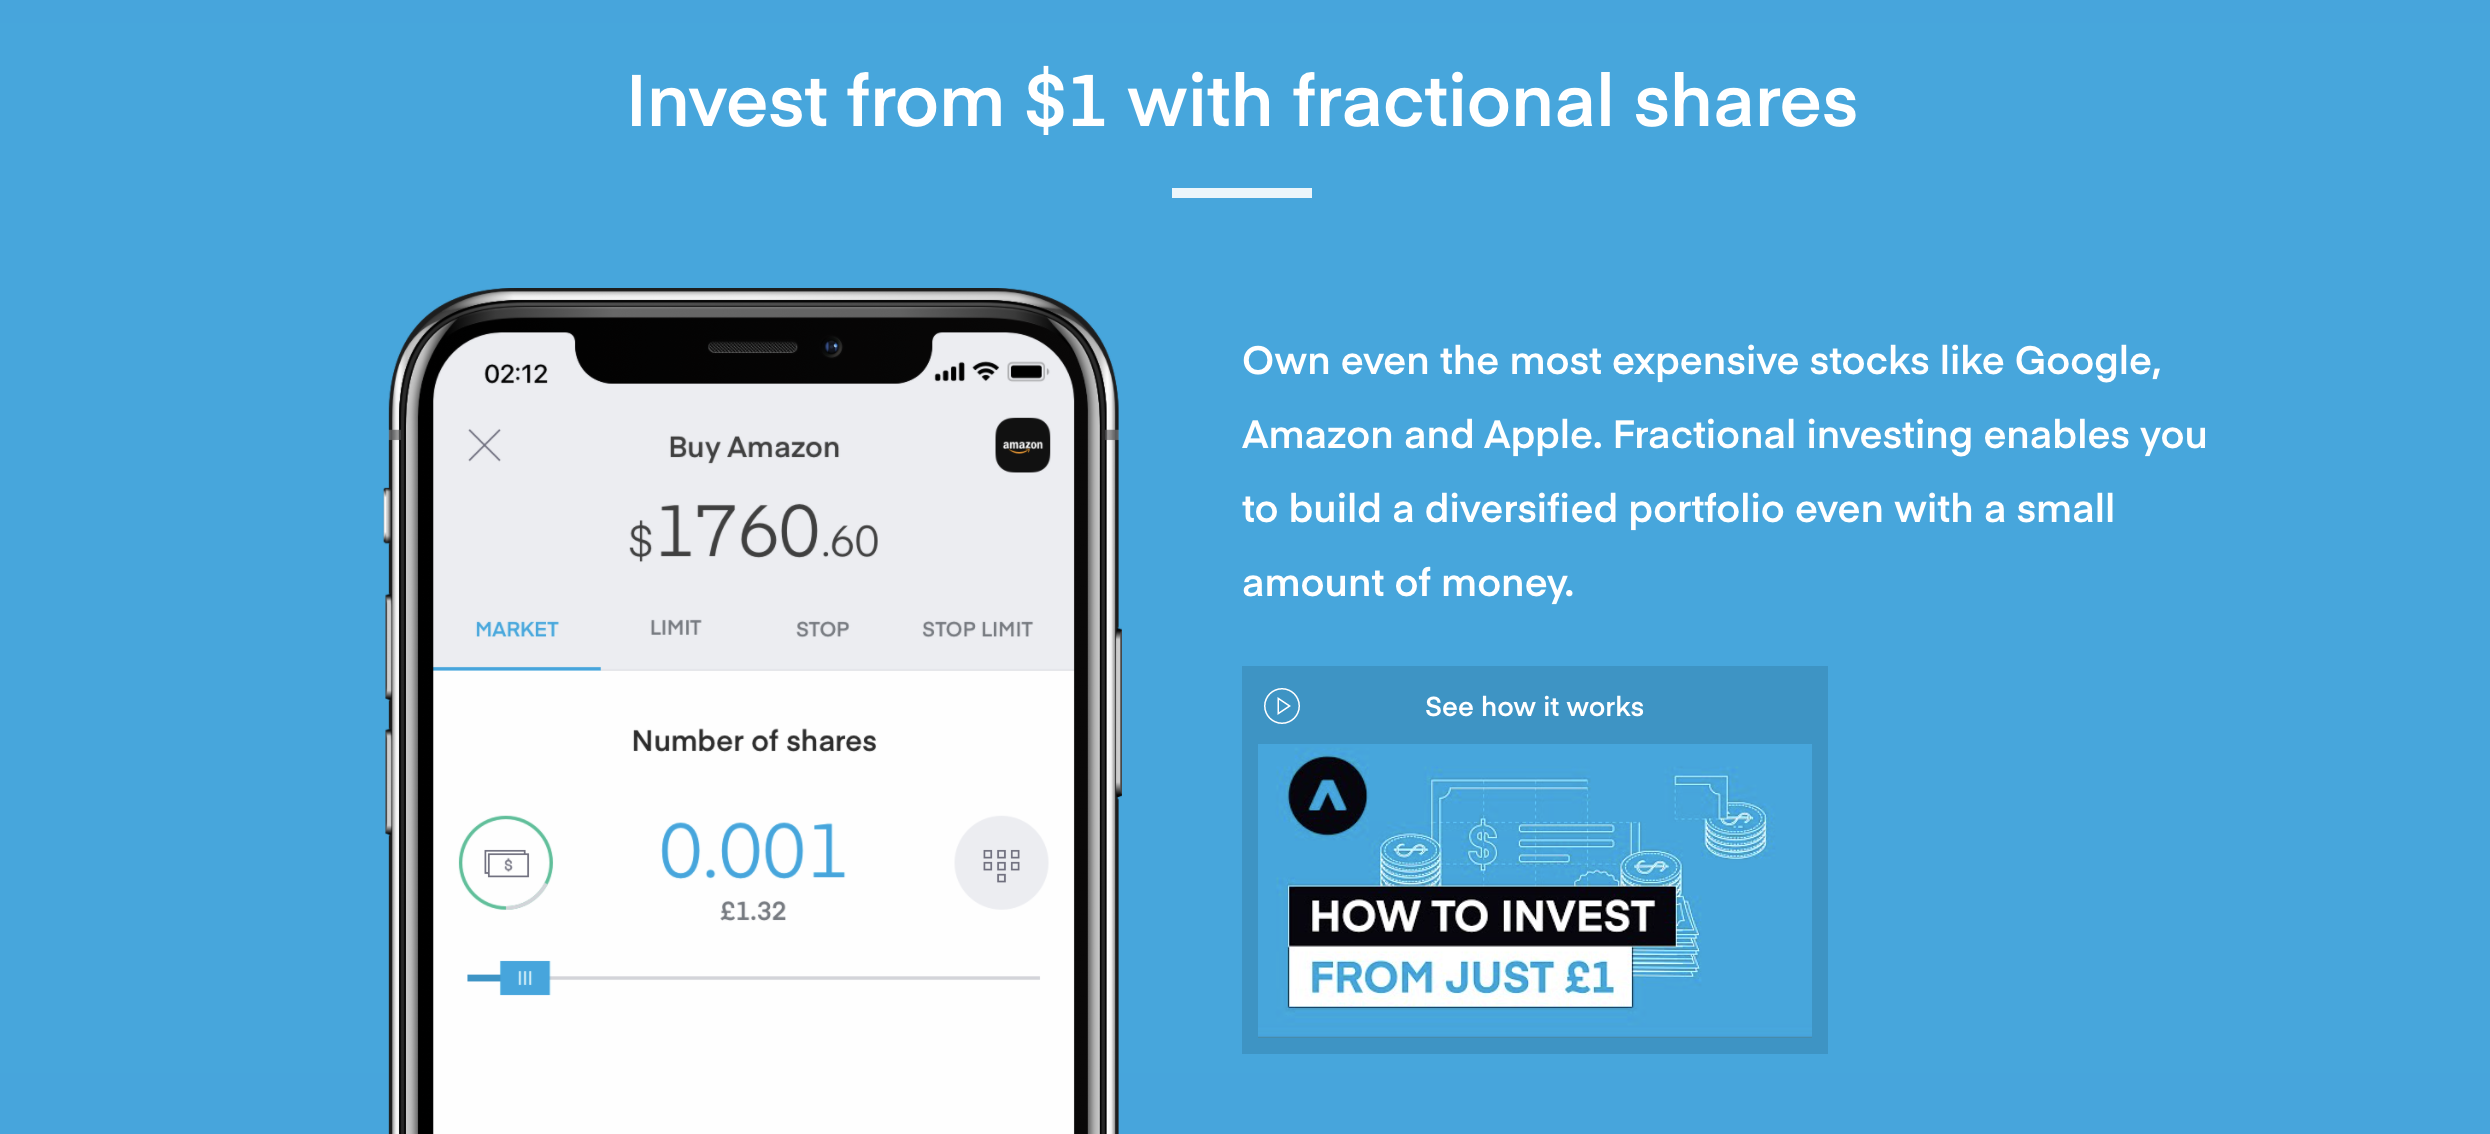 Trading 212 offers fractional shares, meaning you can invest in expensive shares with as little as $1. This makes the platform extremely flexible and a great low cost option. Image from Trading212.com